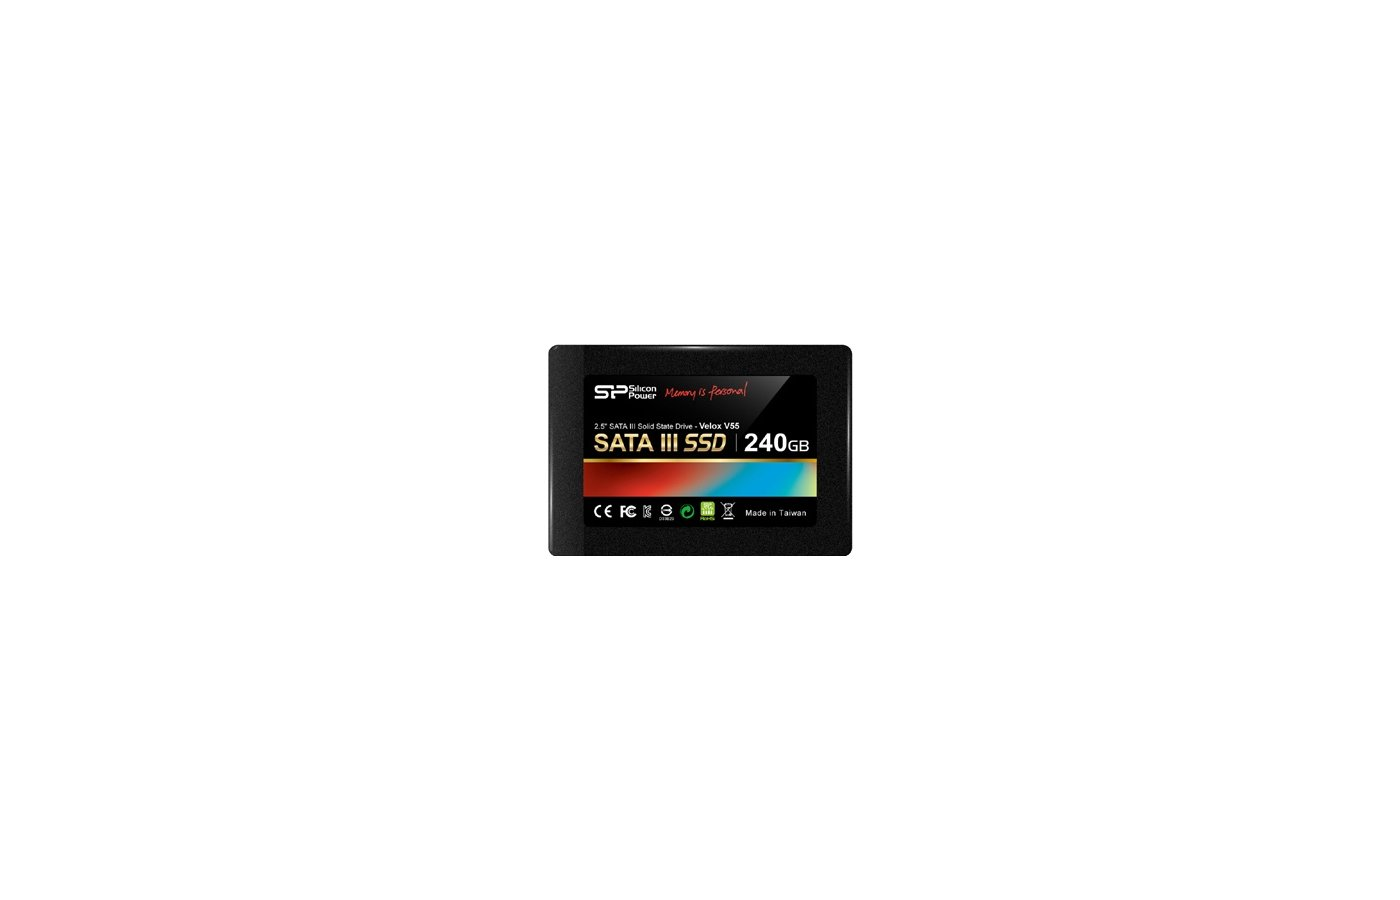 "SSD жесткий диск Silicon Power SATA-III 240Gb SP240GBSS3V55S25 V55 2.5"" w490Mb/s"